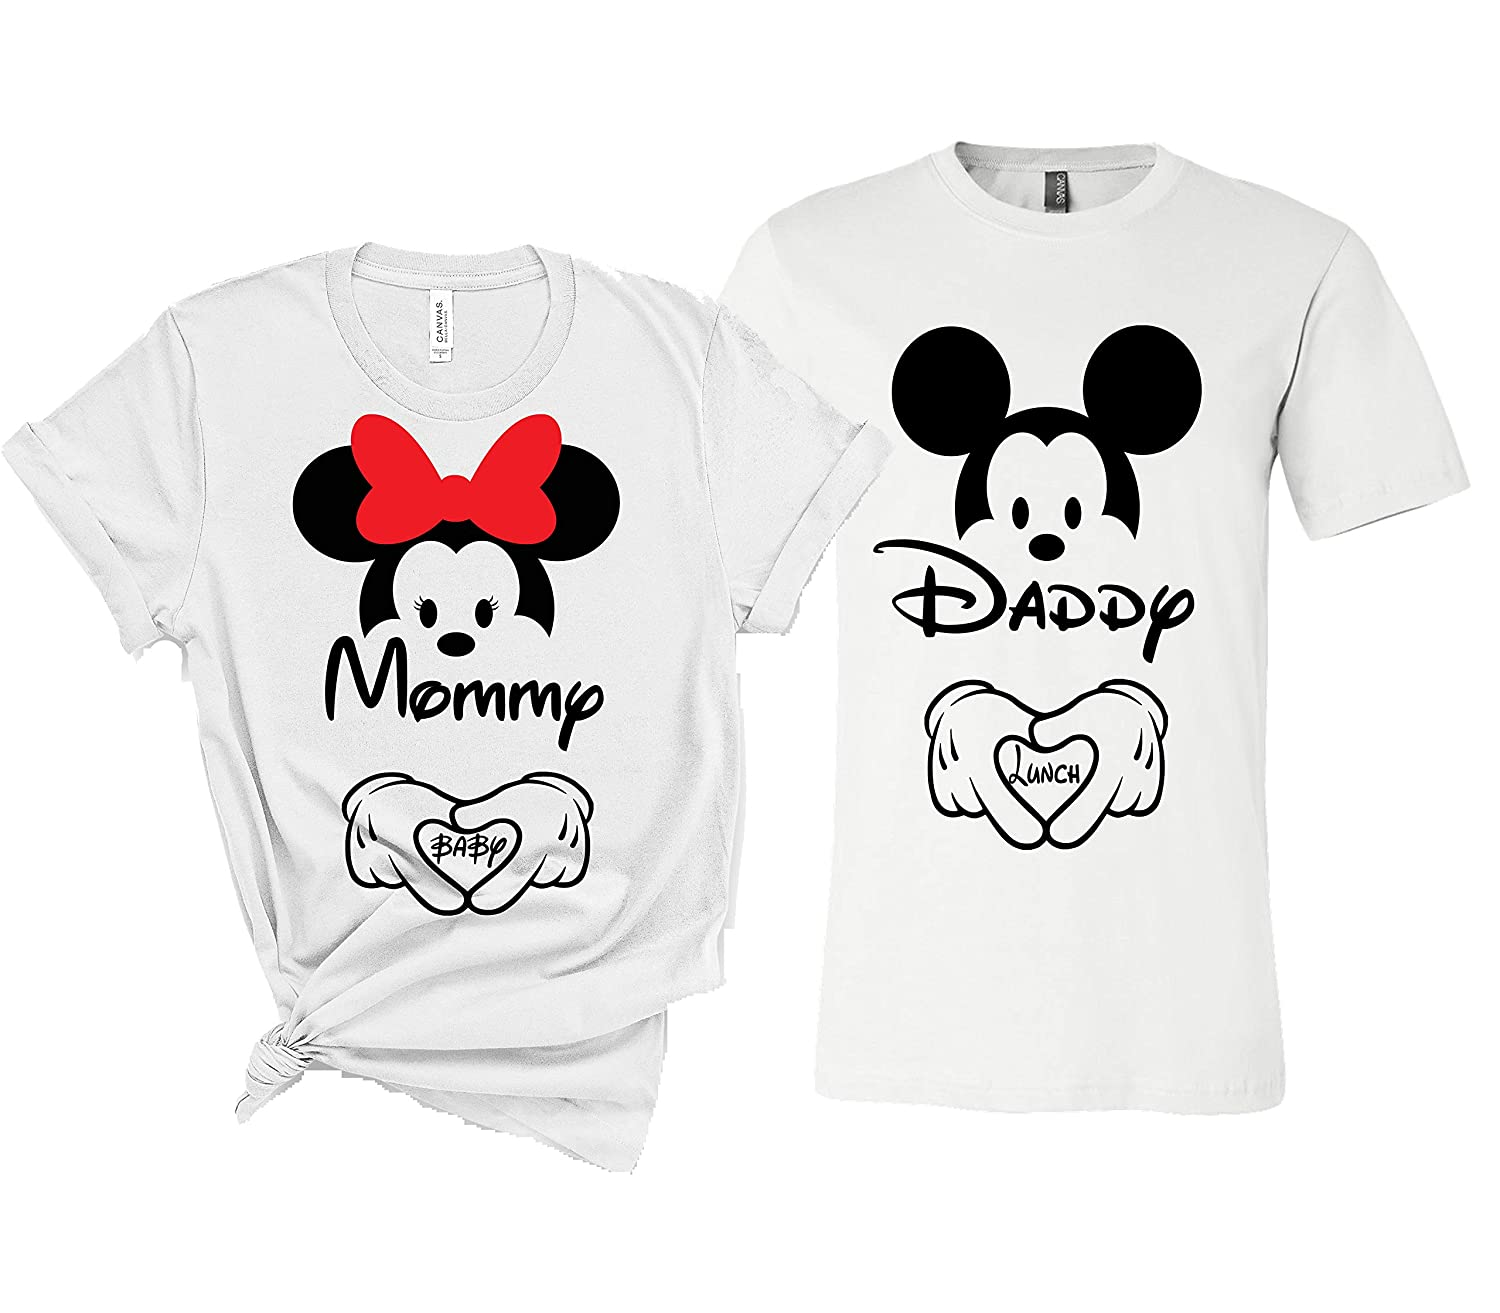 a18174d61b027 Amazon.com: Amazing Retro Couple Shirts Dad Mom Couple Matching Pregnancy  Announcement T-Shirt-(Sold Separately): Clothing